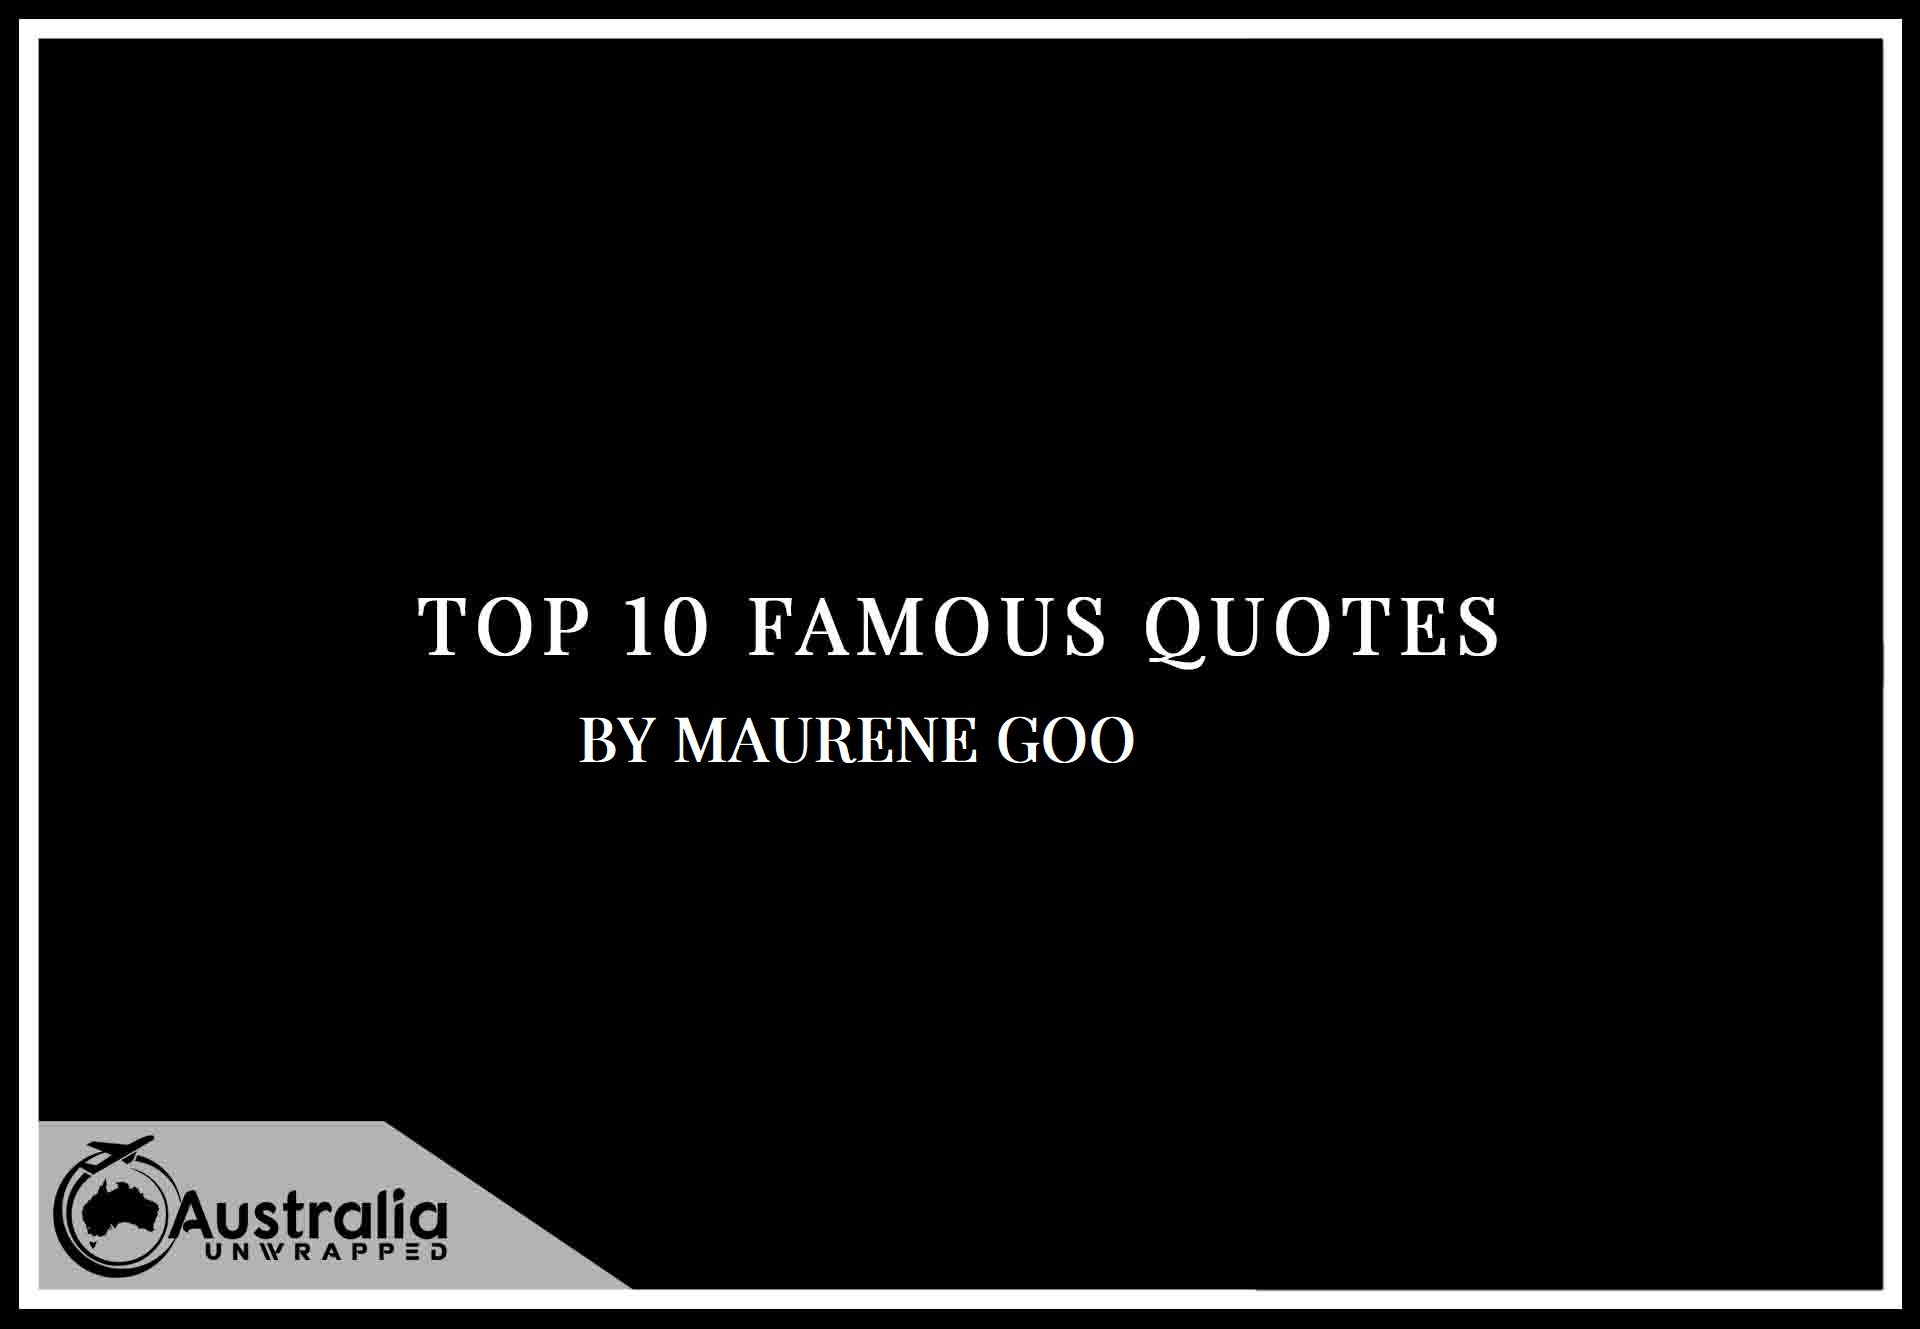 Top 10 Famous Quotes by Author Maurene Goo